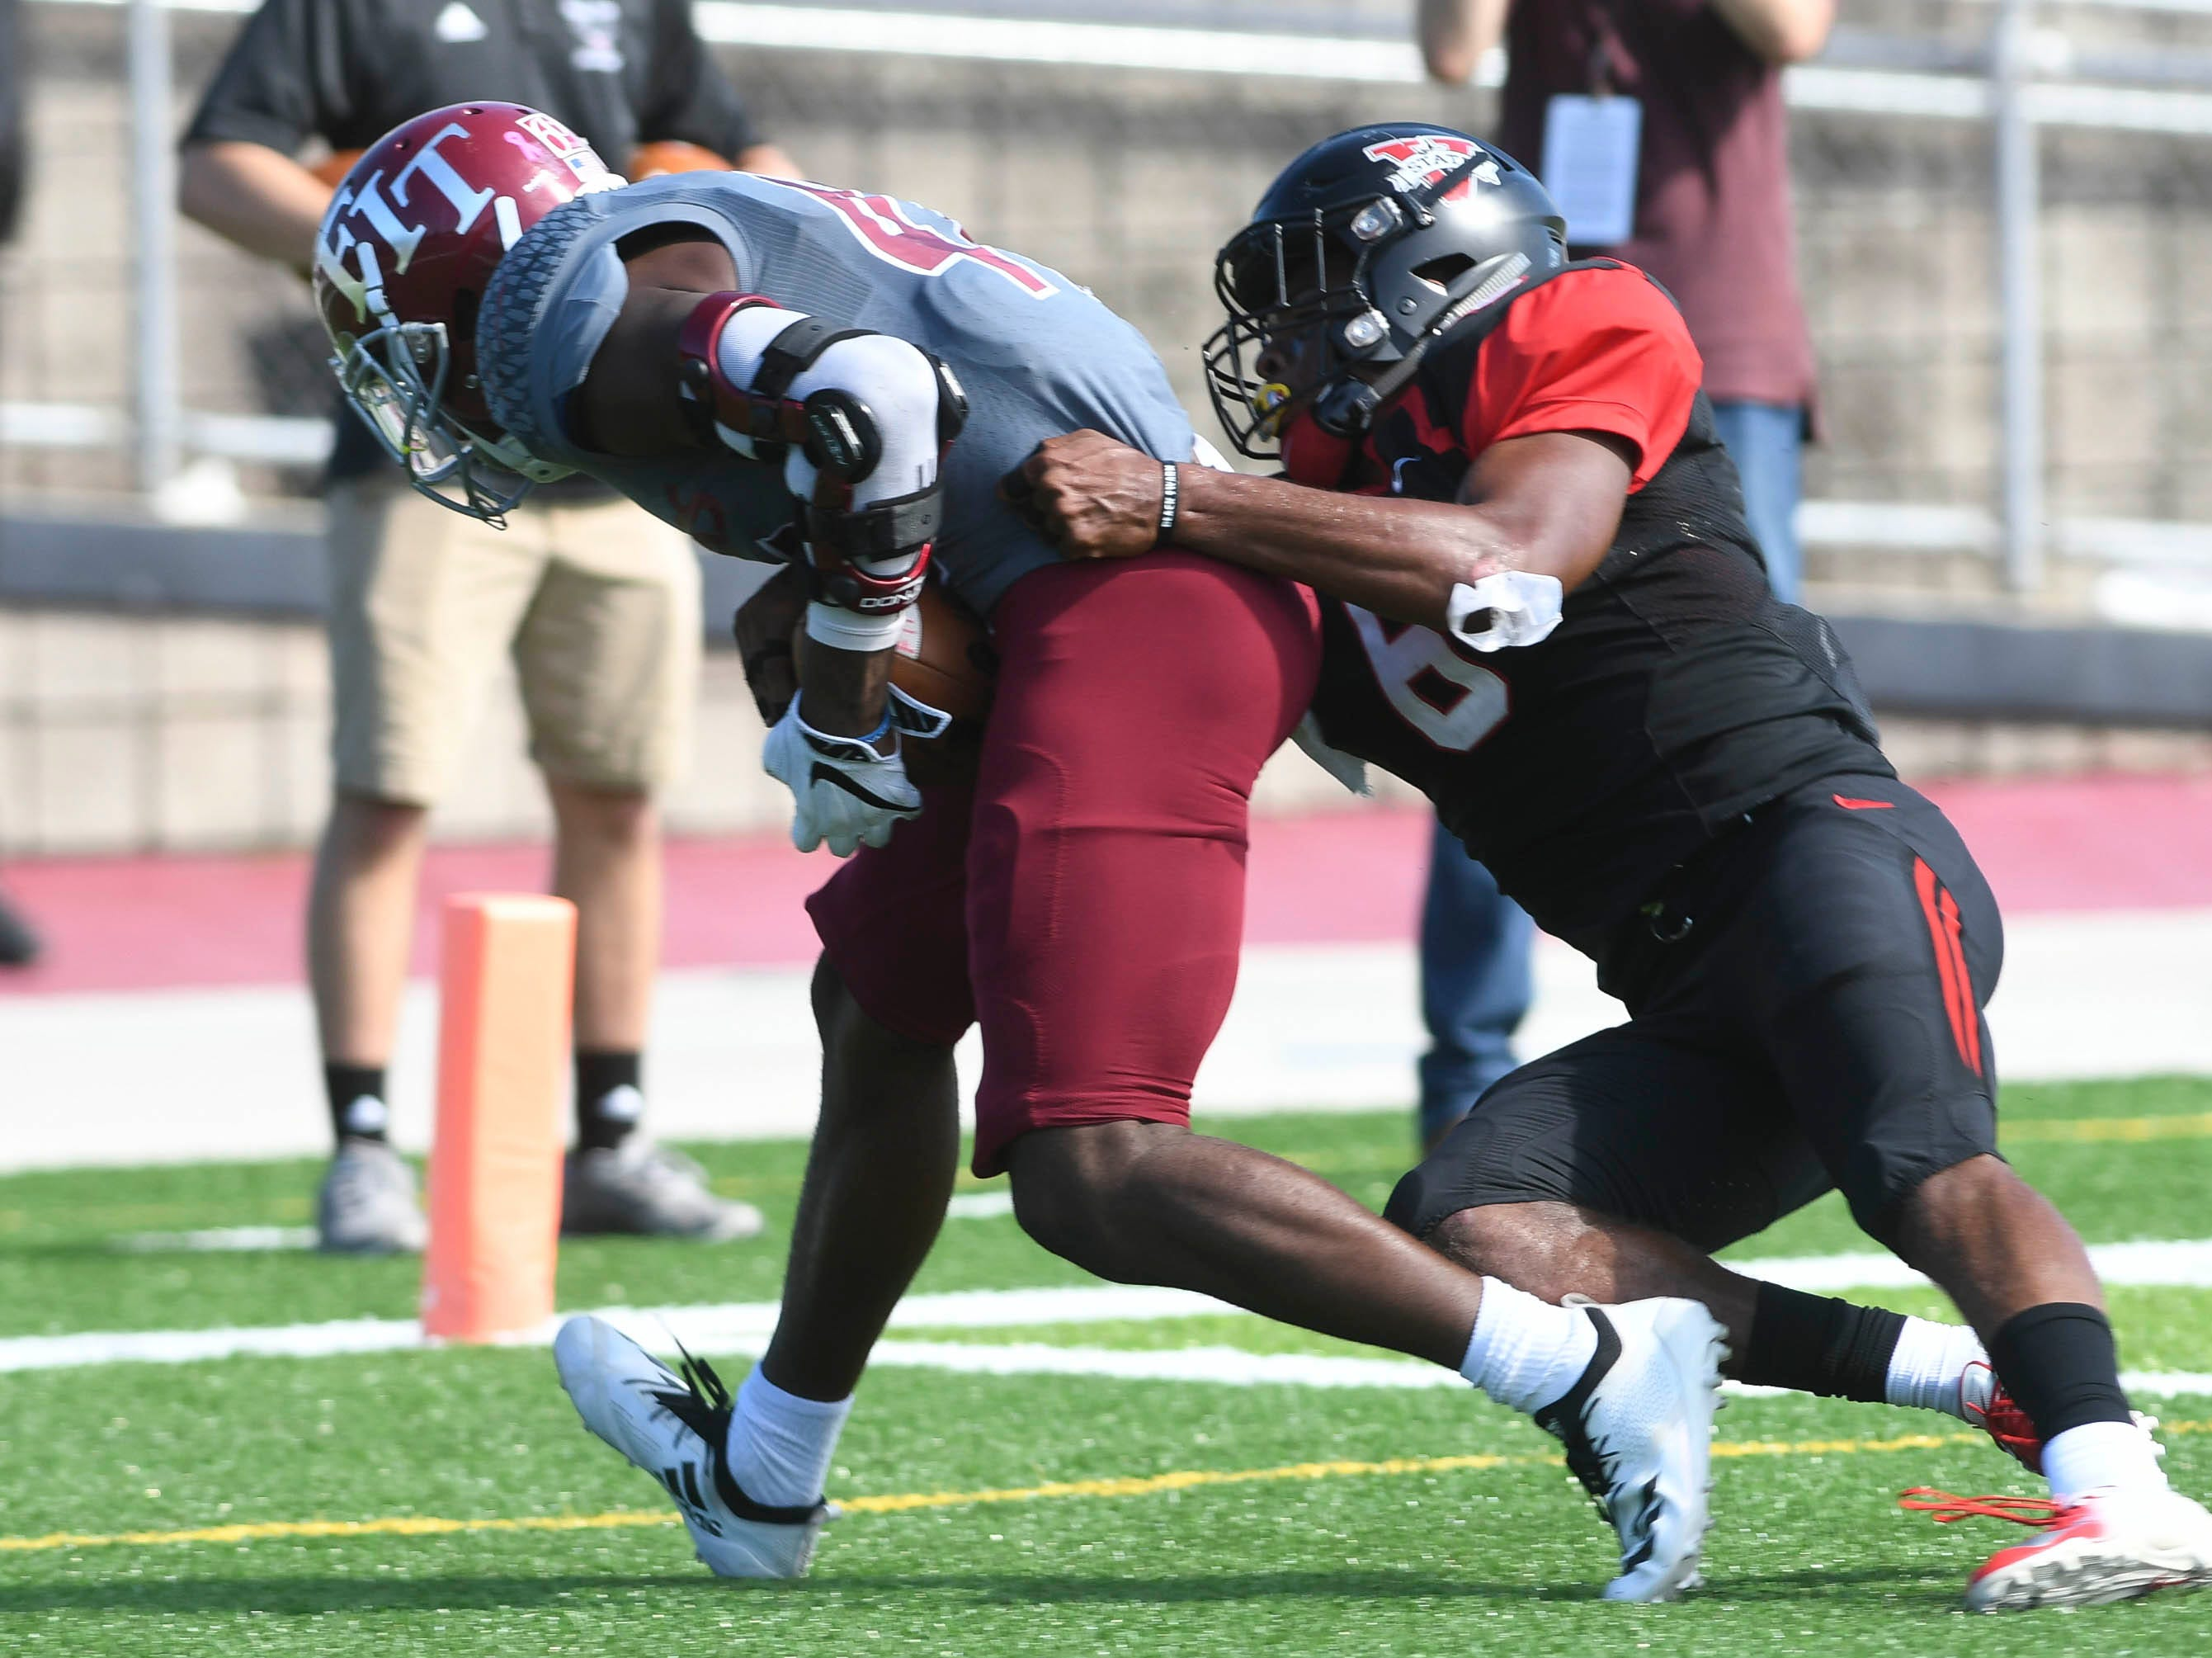 Damien McGhee of Florida Tech drags Ravarius Rivers of Valdosta State into the end zone during Saturday's game.